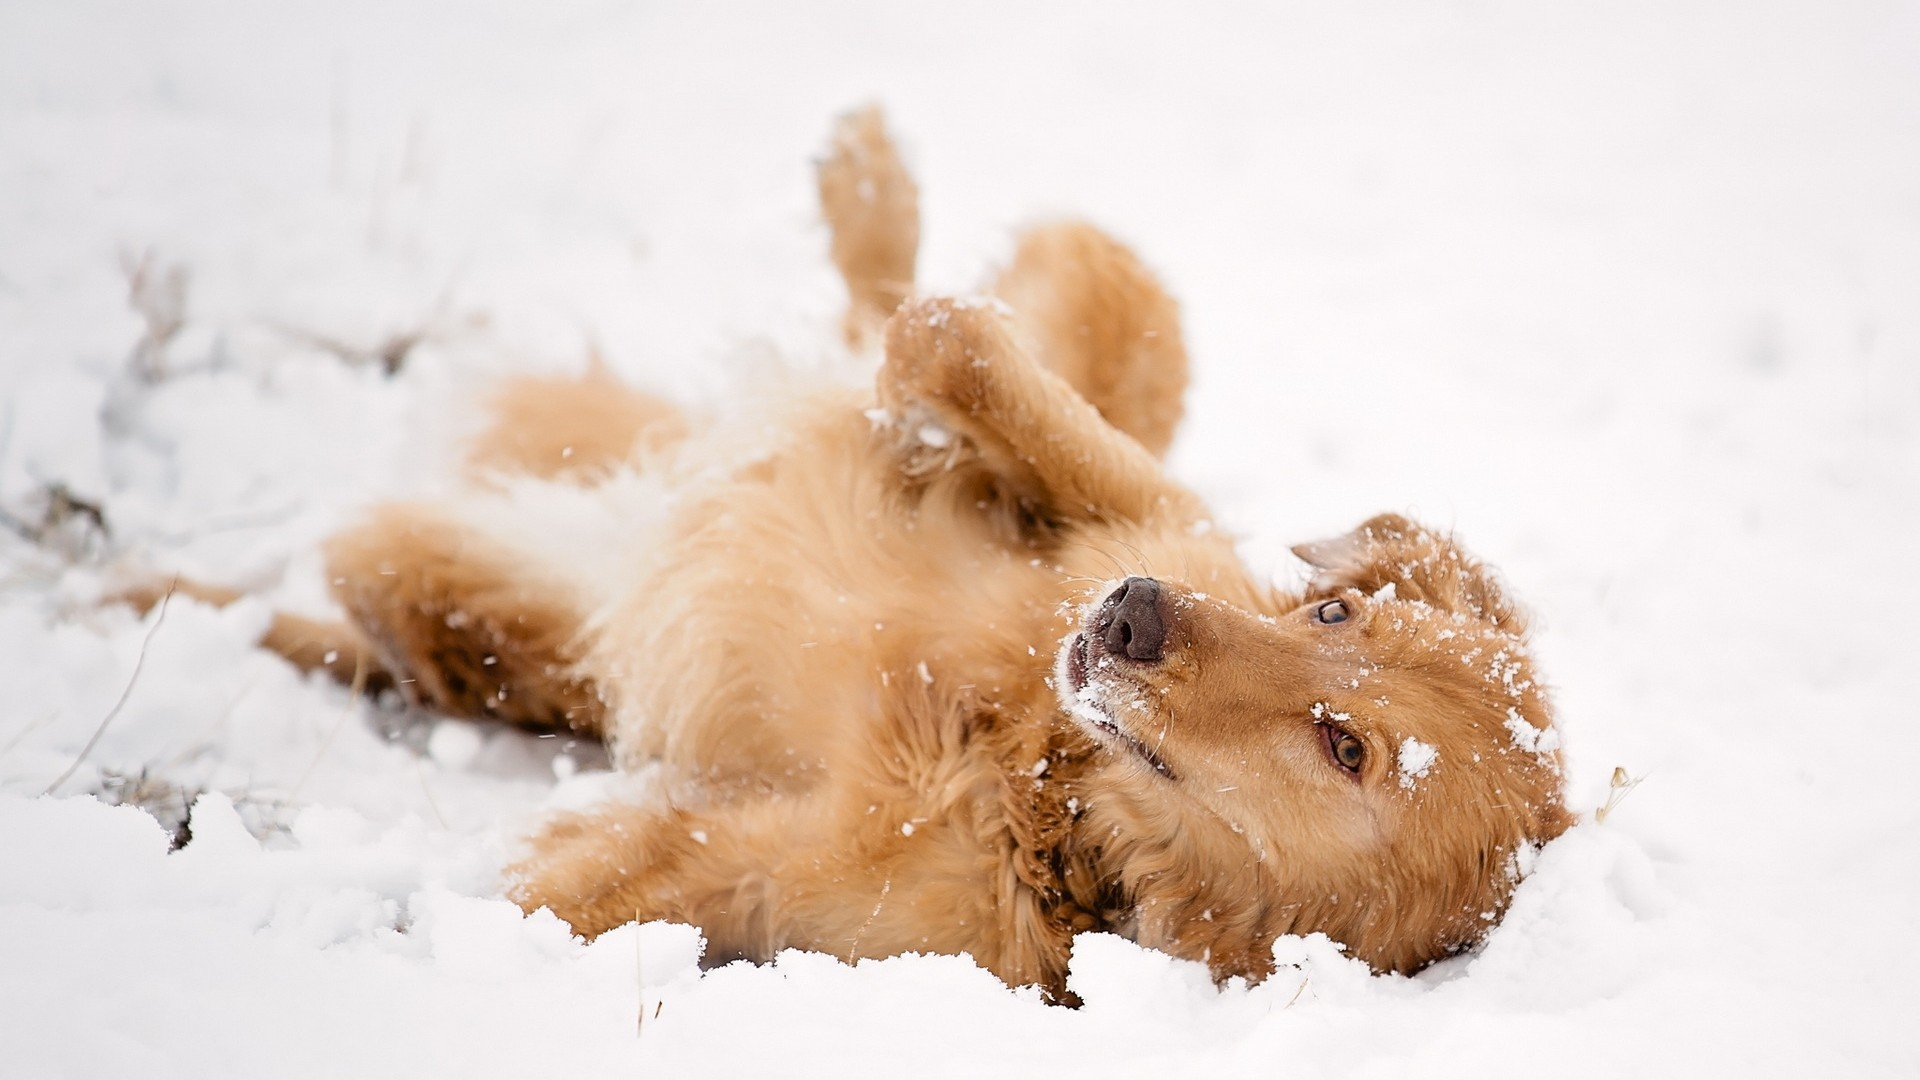 Red dog lying in the snow wallpapers and images   wallpapers pictures 1920x1080